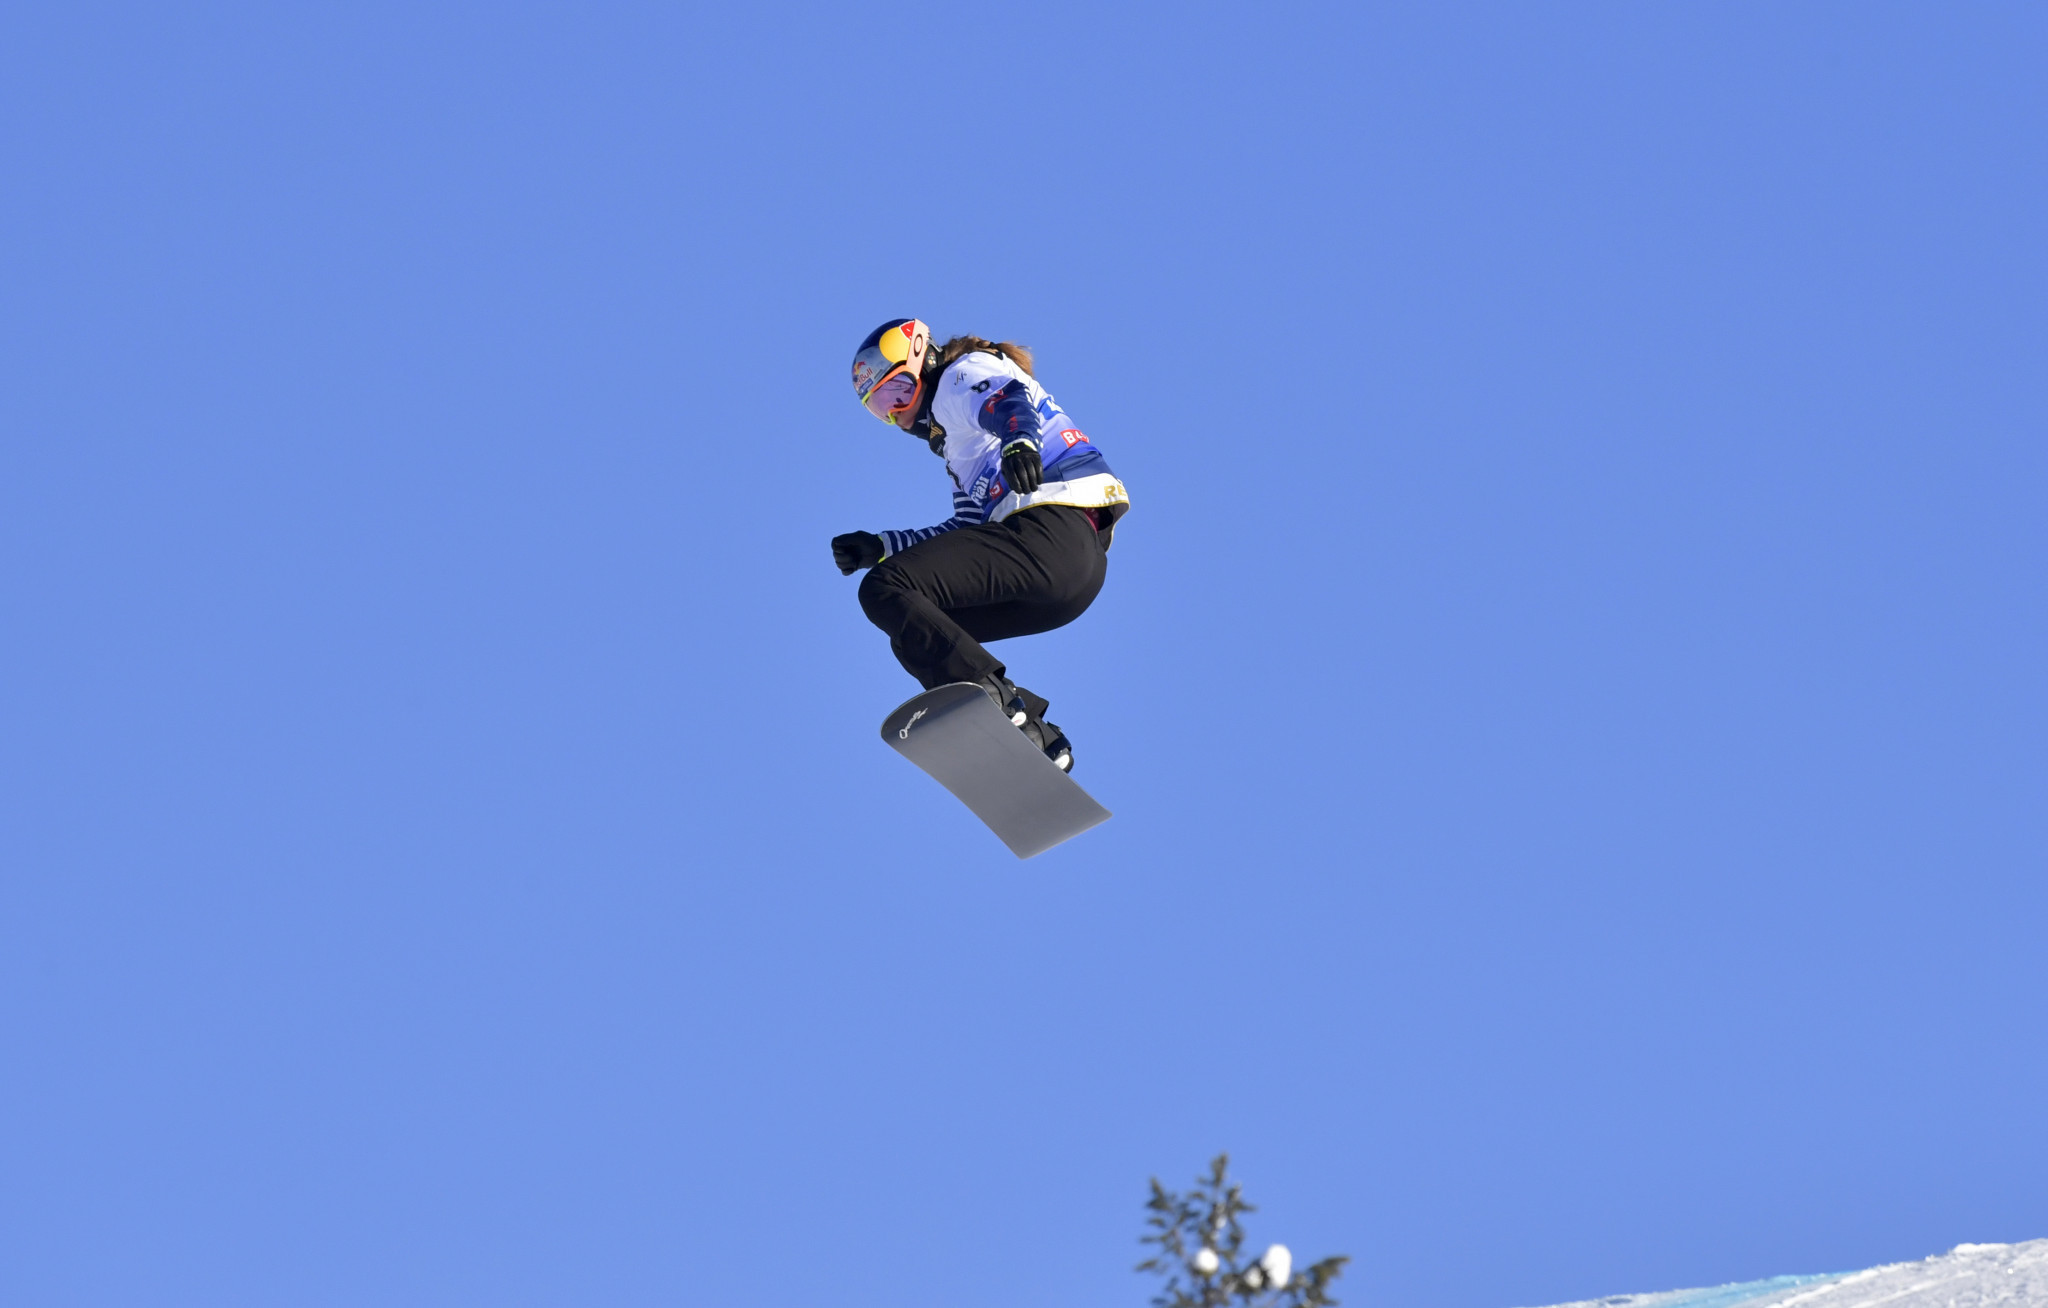 Samková and Hämmerle win in Veysonnaz to claim overall Snowboard Cross World Cup crowns